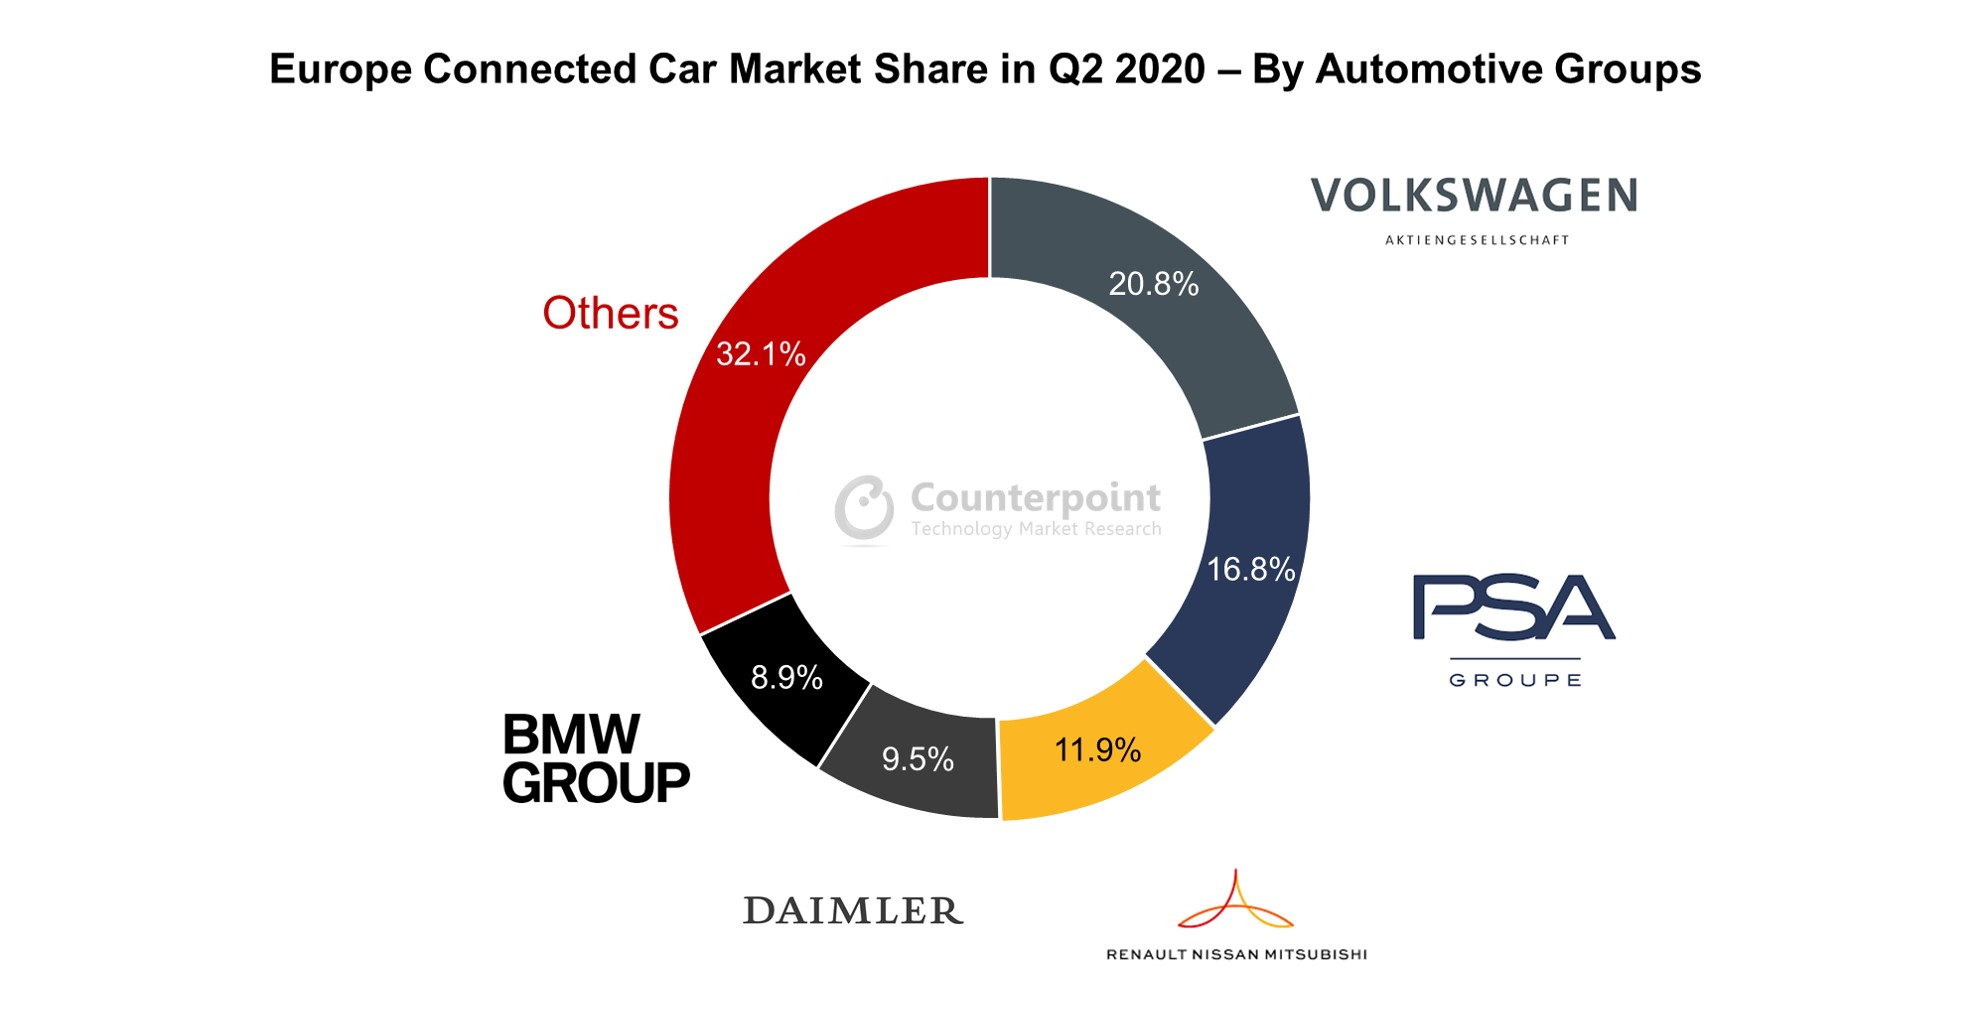 Europe Connected Car Market Share in Q2 2020 – By Automotive Groups